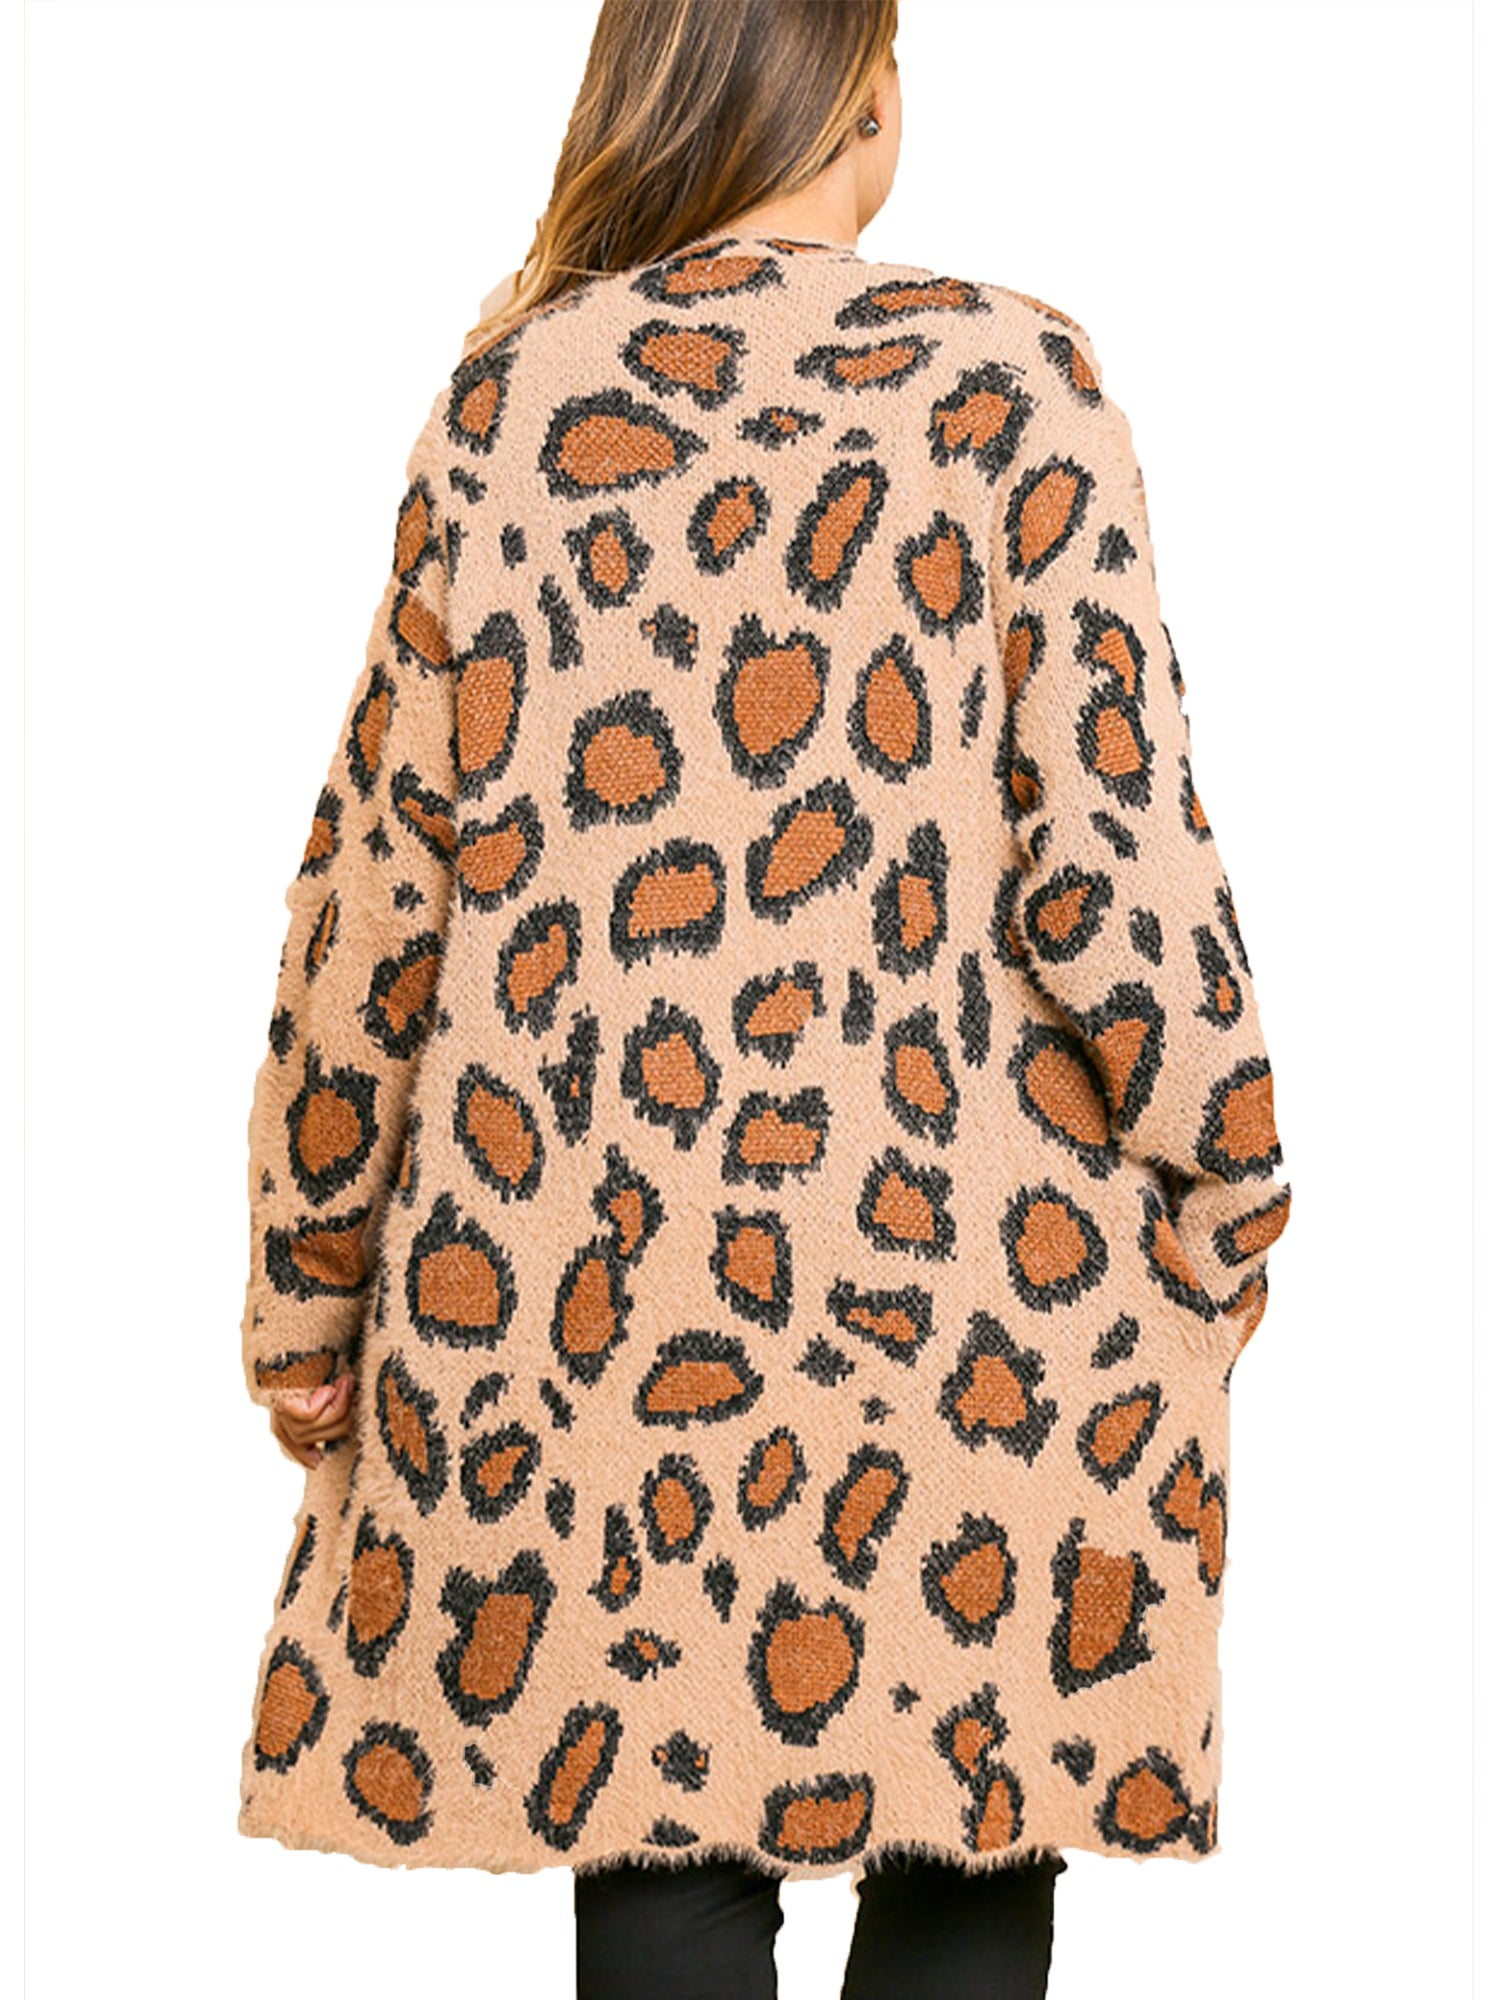 Latte Animal Print Long Sleeve Fuzzy Long Open Front Sweater Cardigan